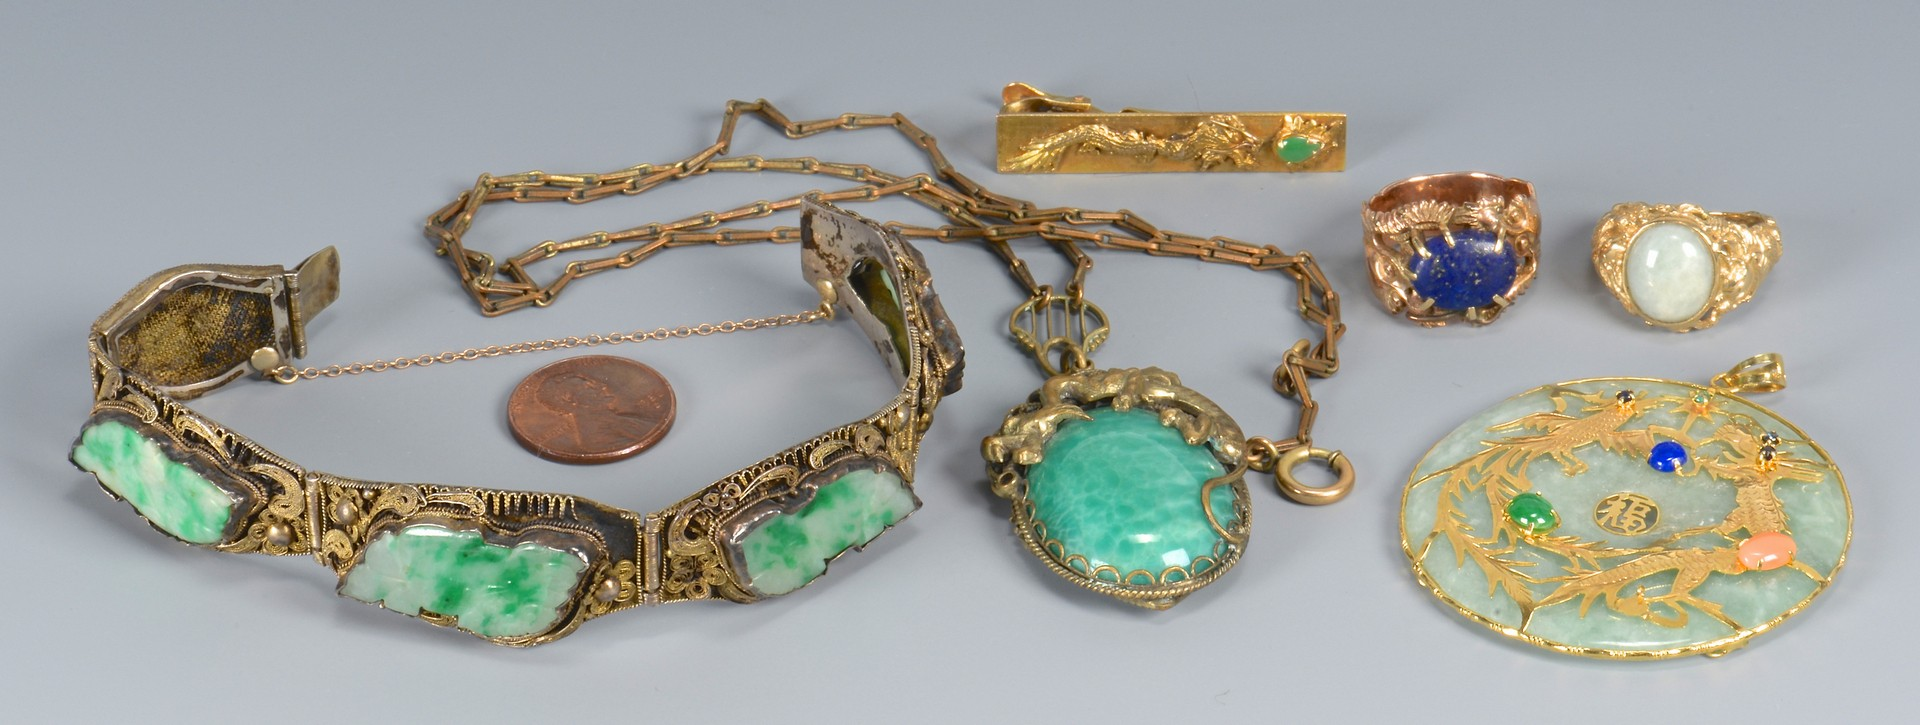 Lot 3594153: Gold and Jade Jewelry with dragon design